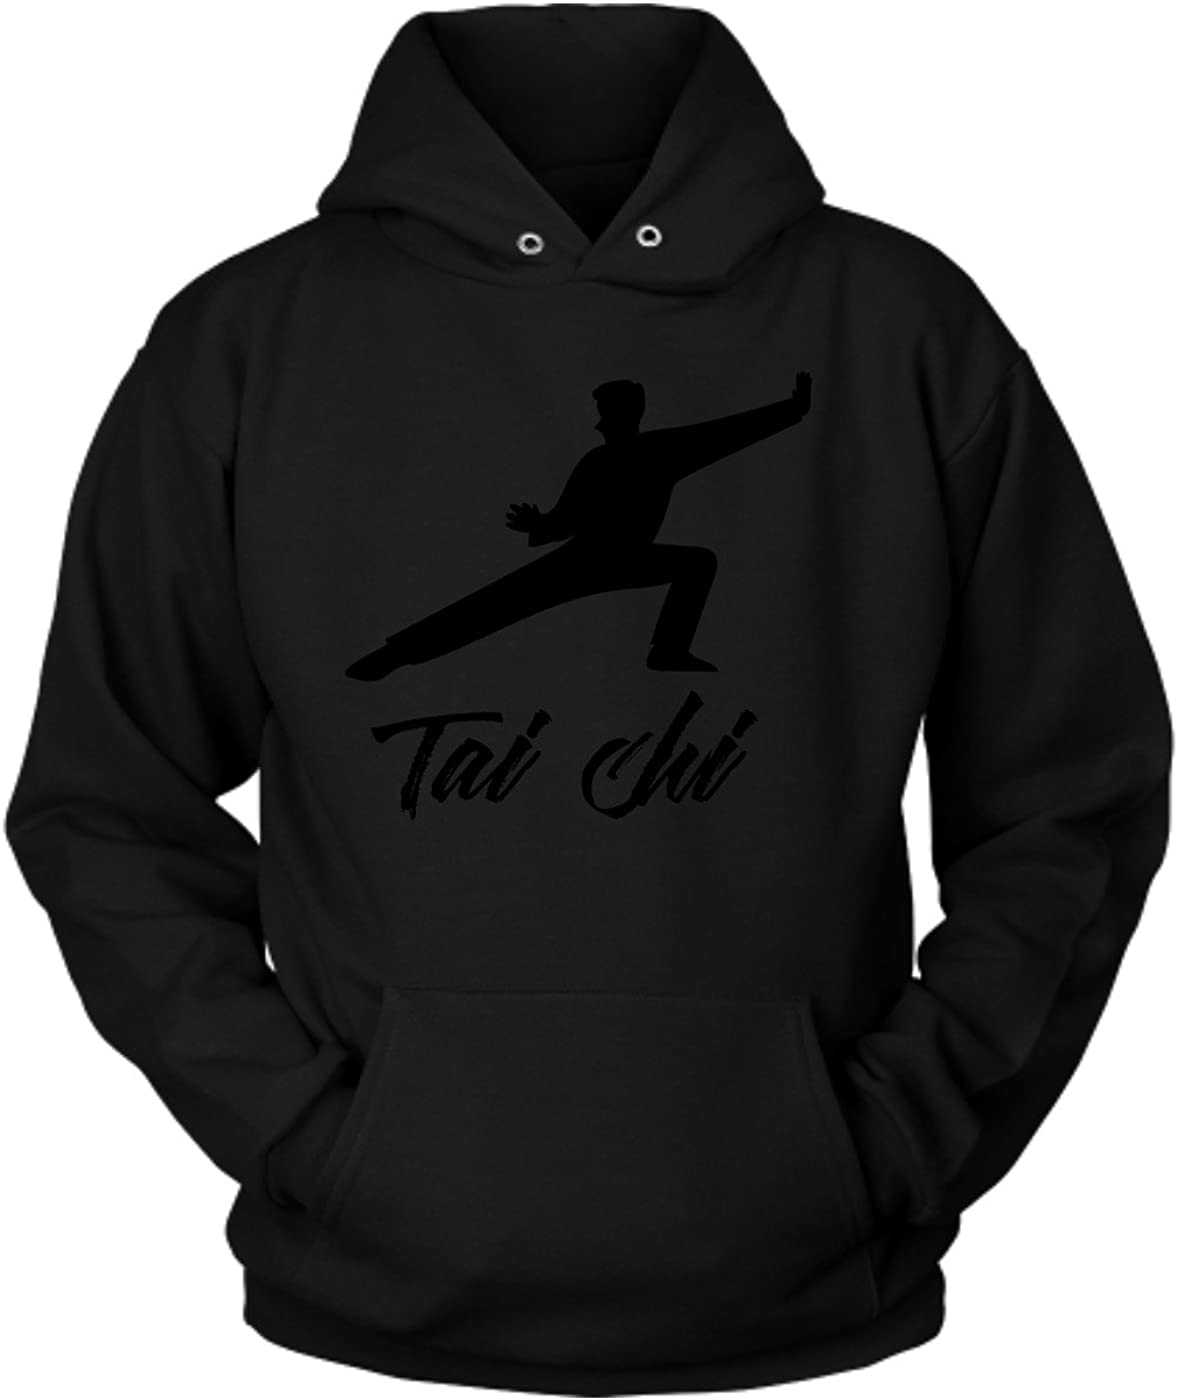 Tai chi Hoodie | Tai chi Cotton Fleece Hoodie | Great Hoodie with a Creative Quote About Tai chi